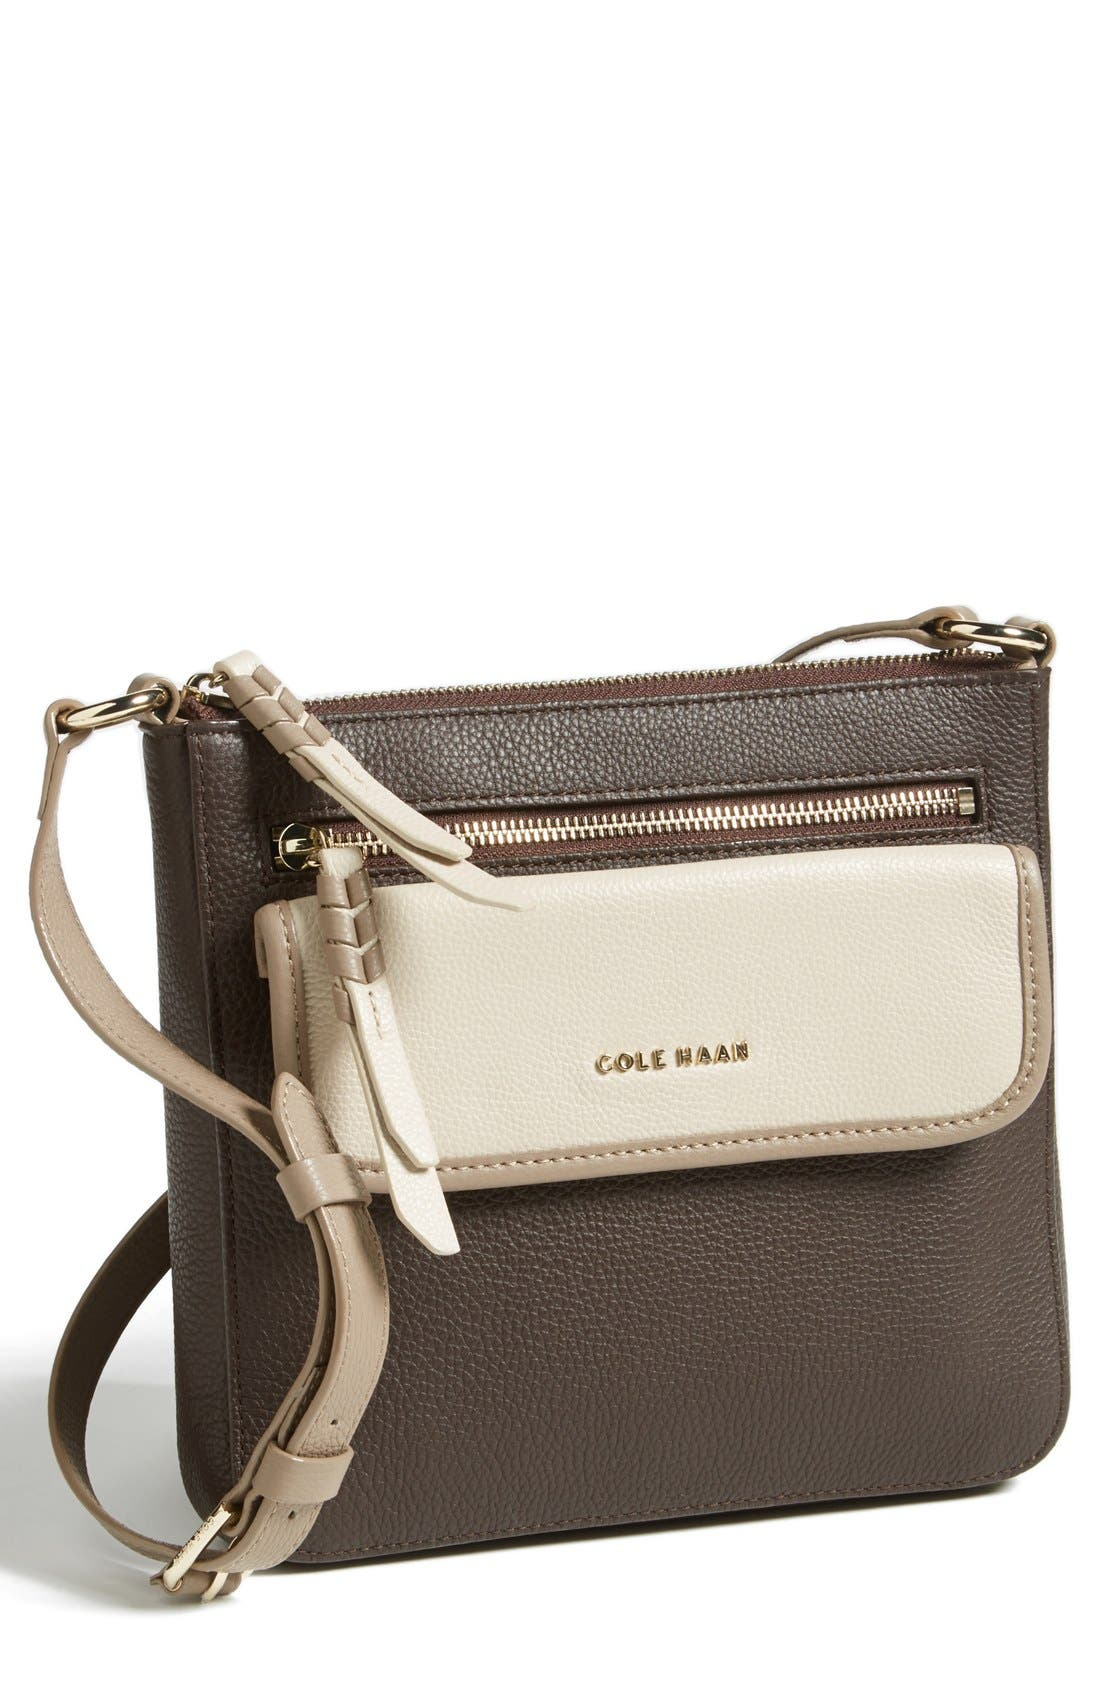 Alternate Image 1 Selected - Cole Haan Leather Crossbody Bag